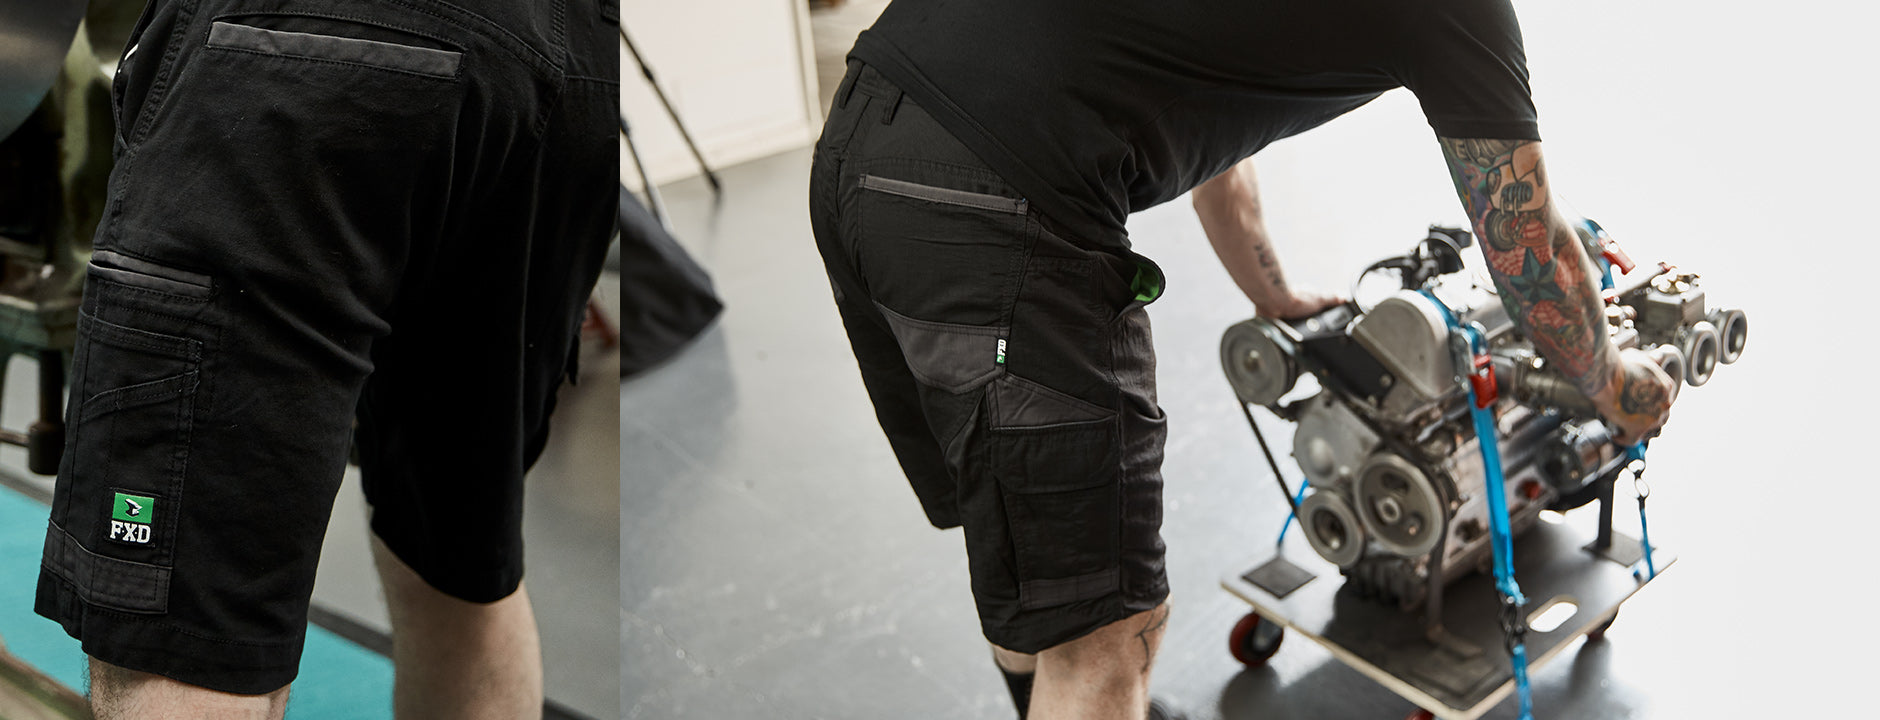 FXD Workwear Function by Design Work Shorts